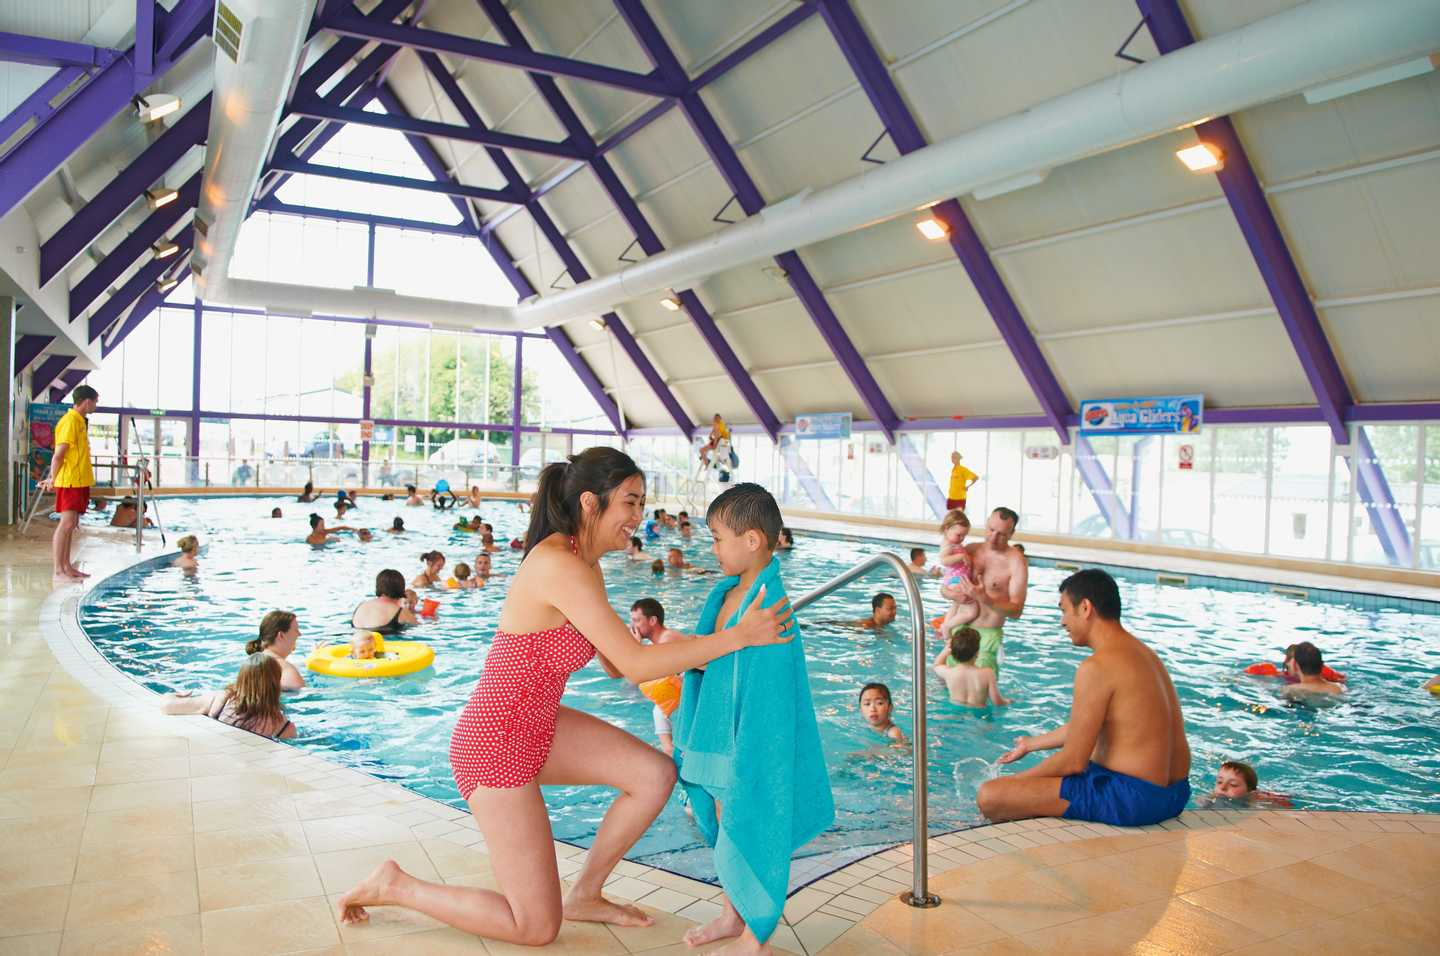 Families splashing around in the heated indoor pool